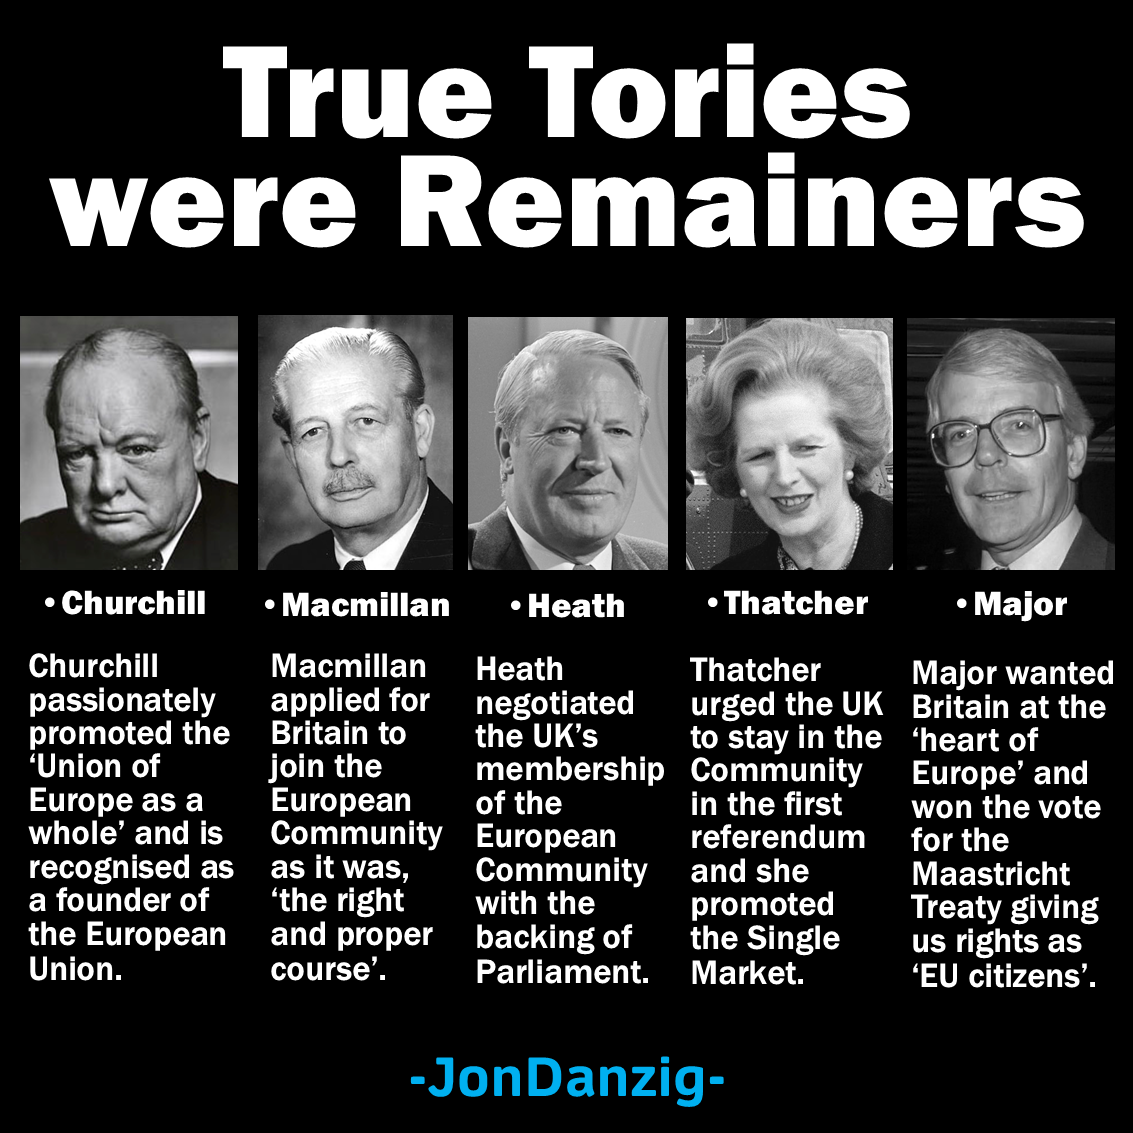 True Tories were Remainers